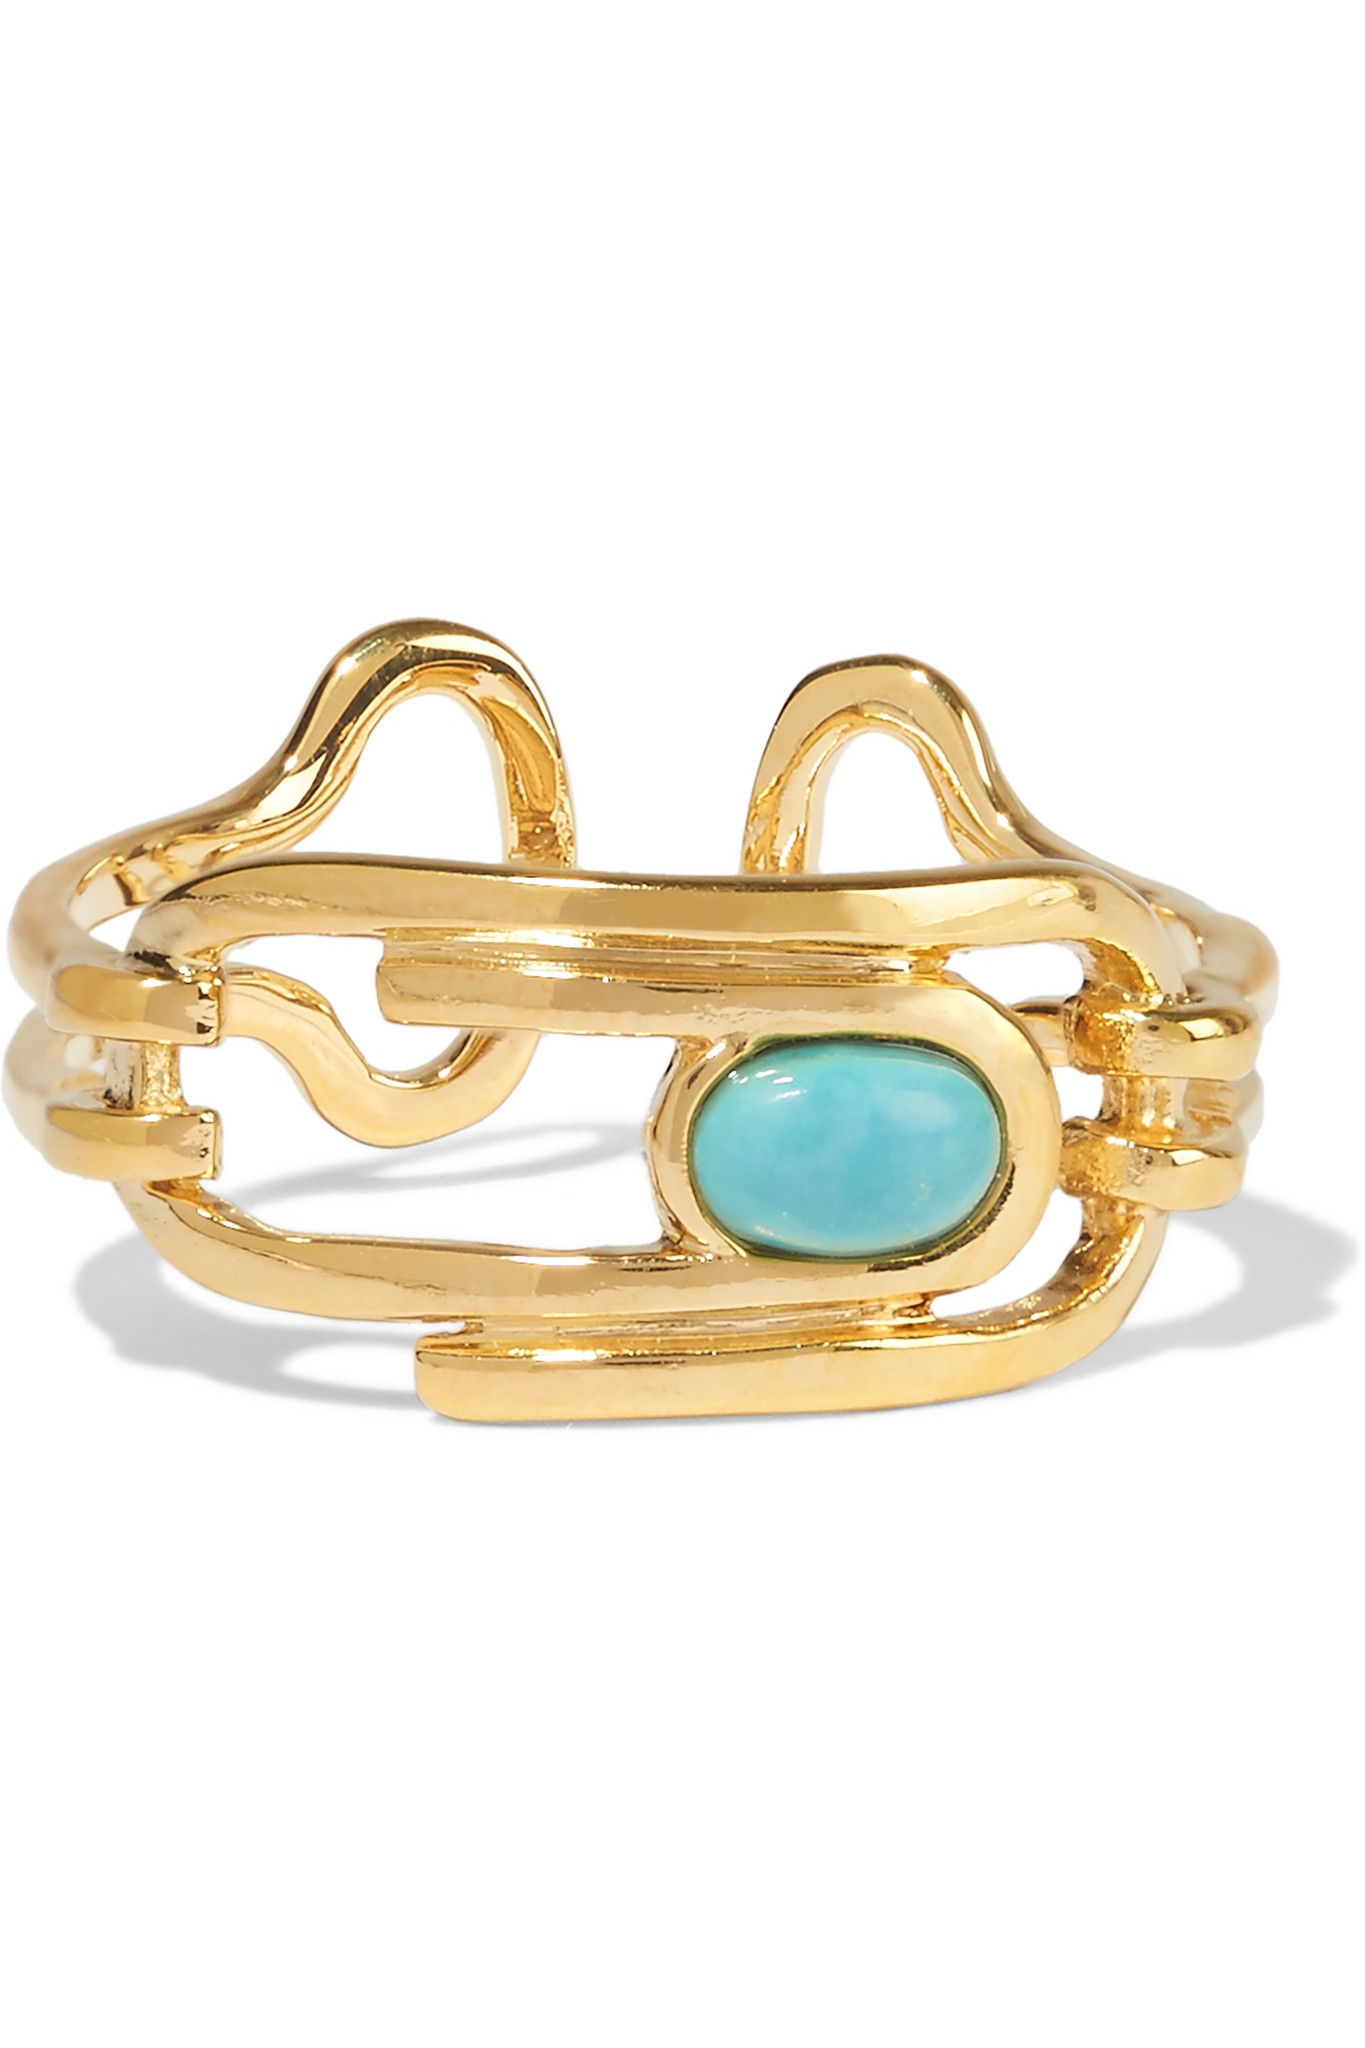 Aurélie Bidermann Miki Turquoise Ring in Turquoise 18K Gold-Plated Brass vEYzcYwN3